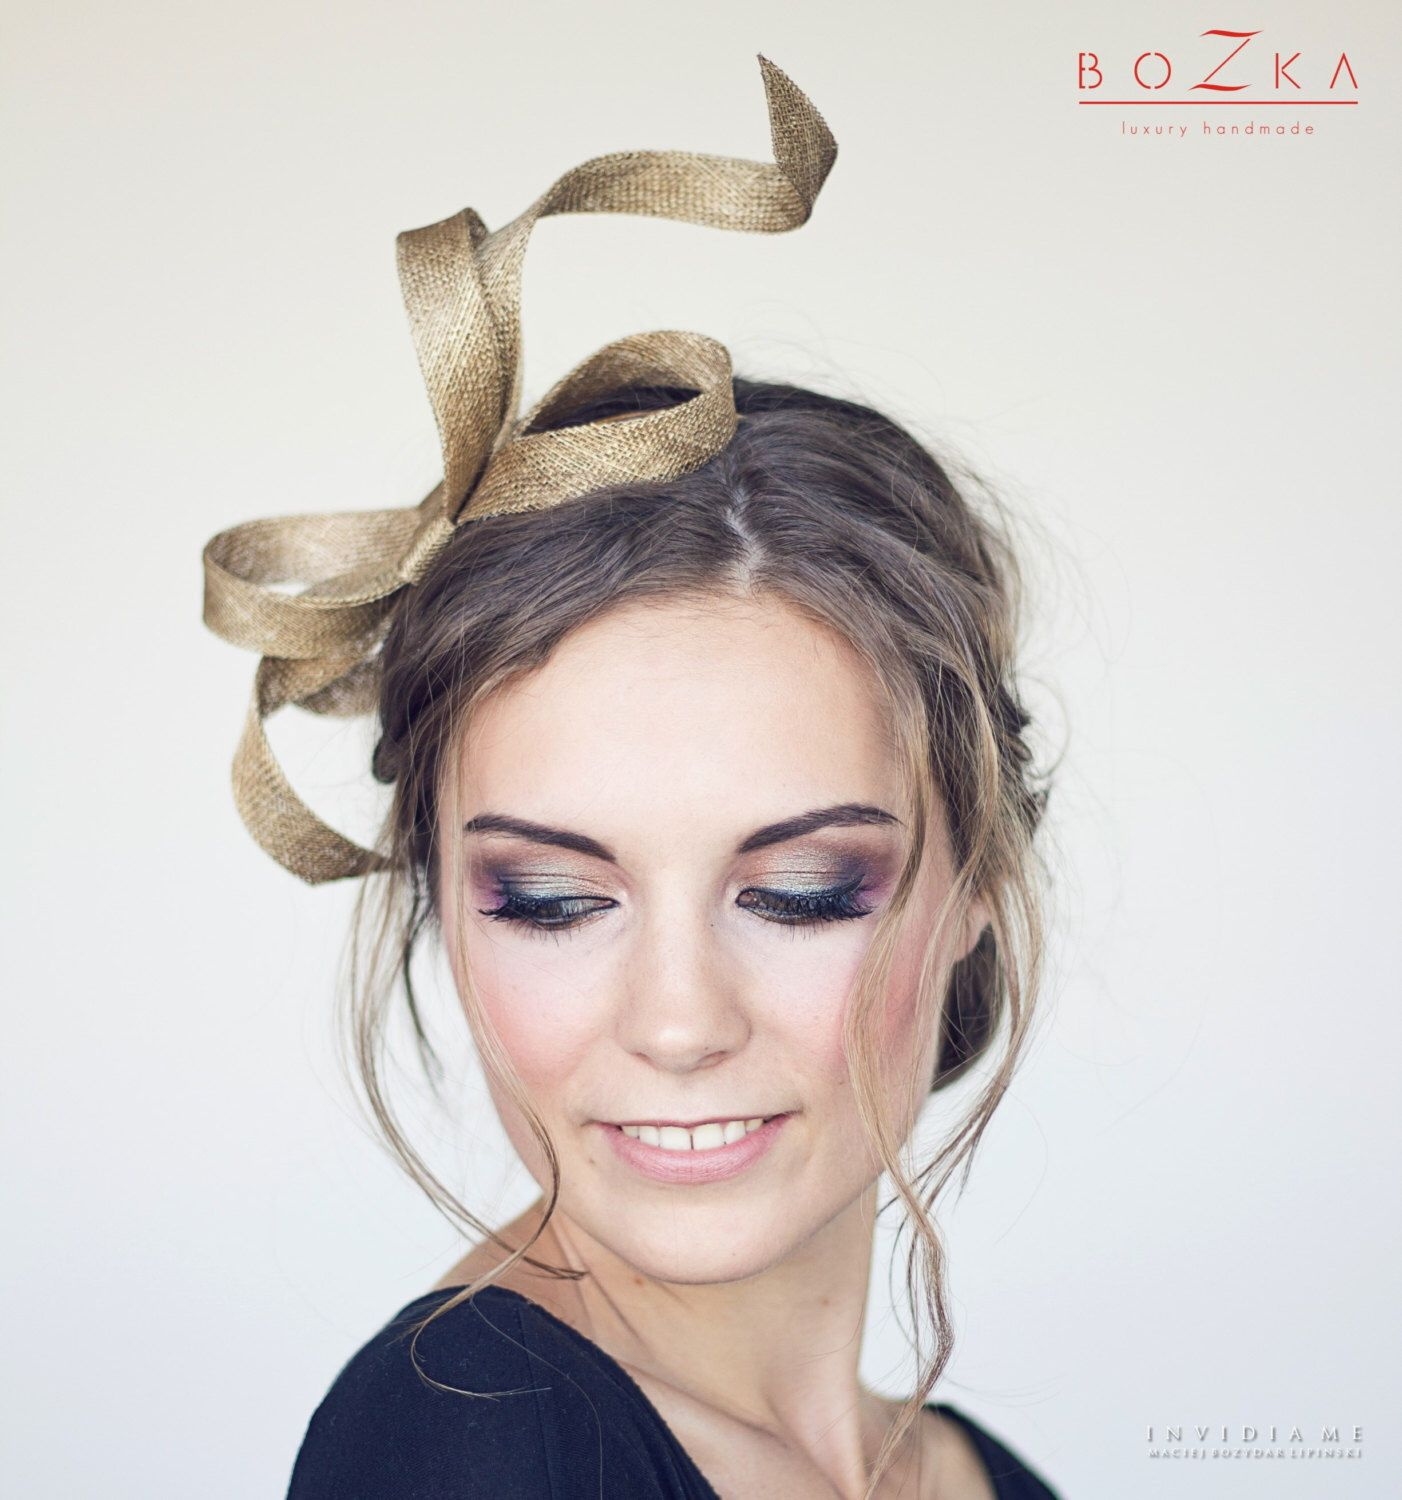 I m obsessed with the idea of wearing a modern fascinator to the next  wedding I attend - like this gold headpiece by boZkaLuxuryHandmade on Etsy a901d24f5078